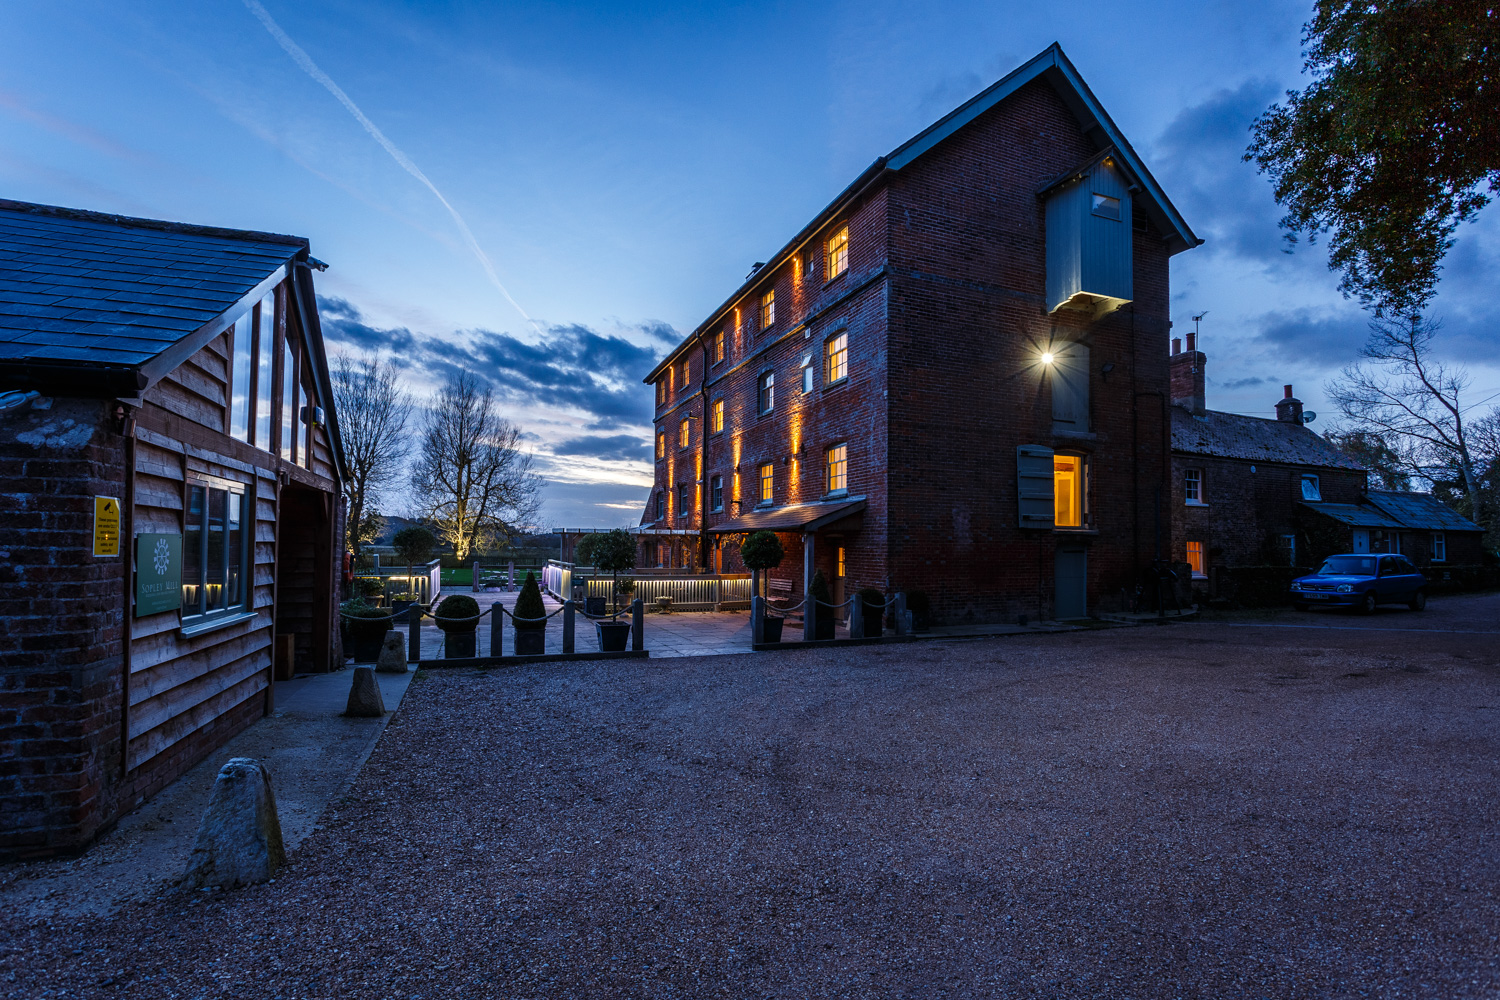 Architectural photography at this Dorset wedding venue, Sopley Mill